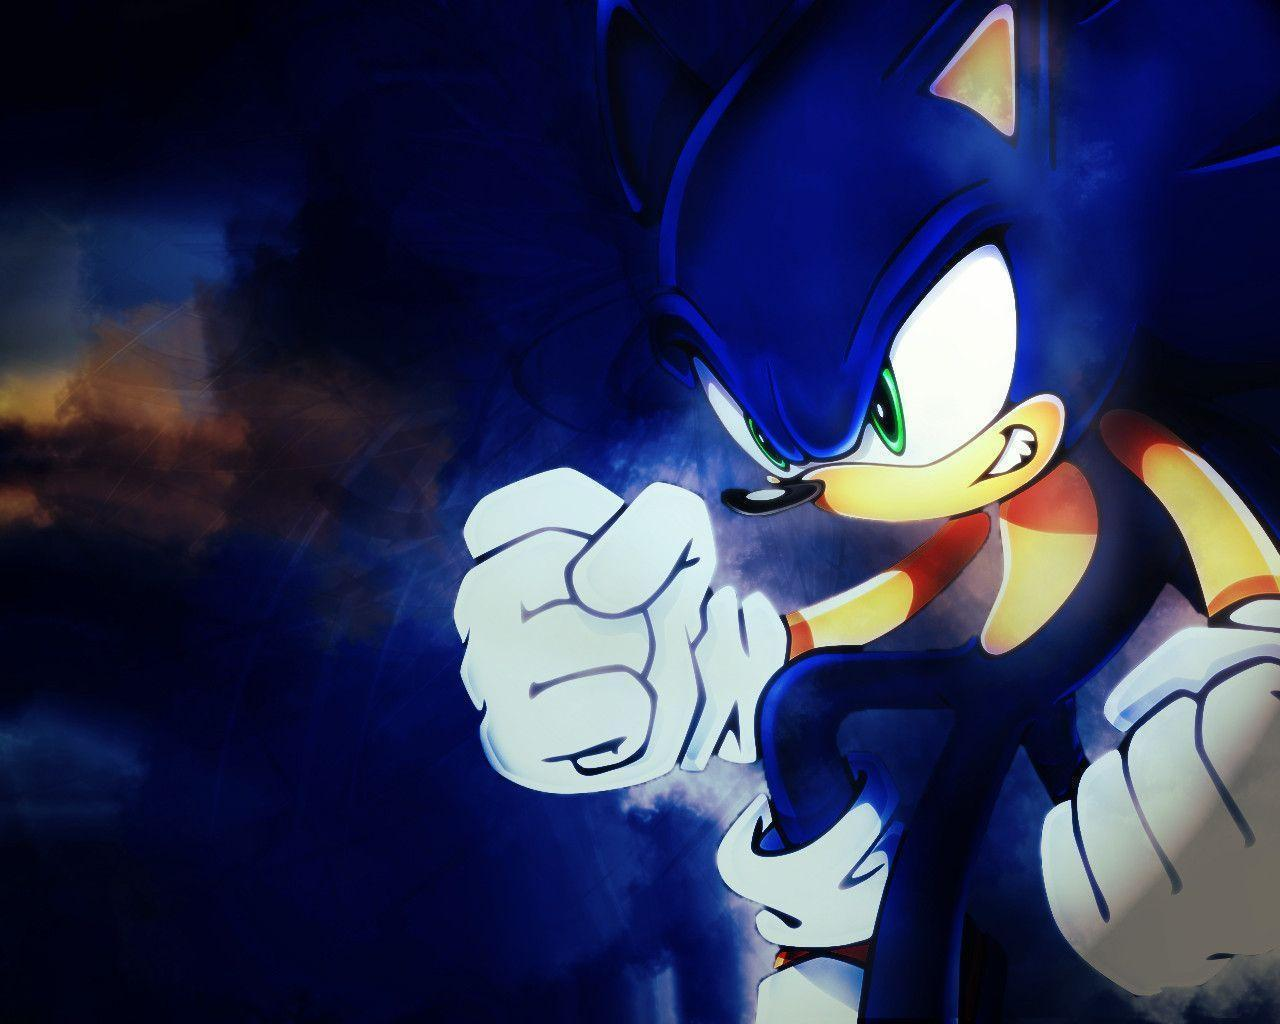 Wallpapers For > Classic Sonic The Hedgehog Wallpapers Hd